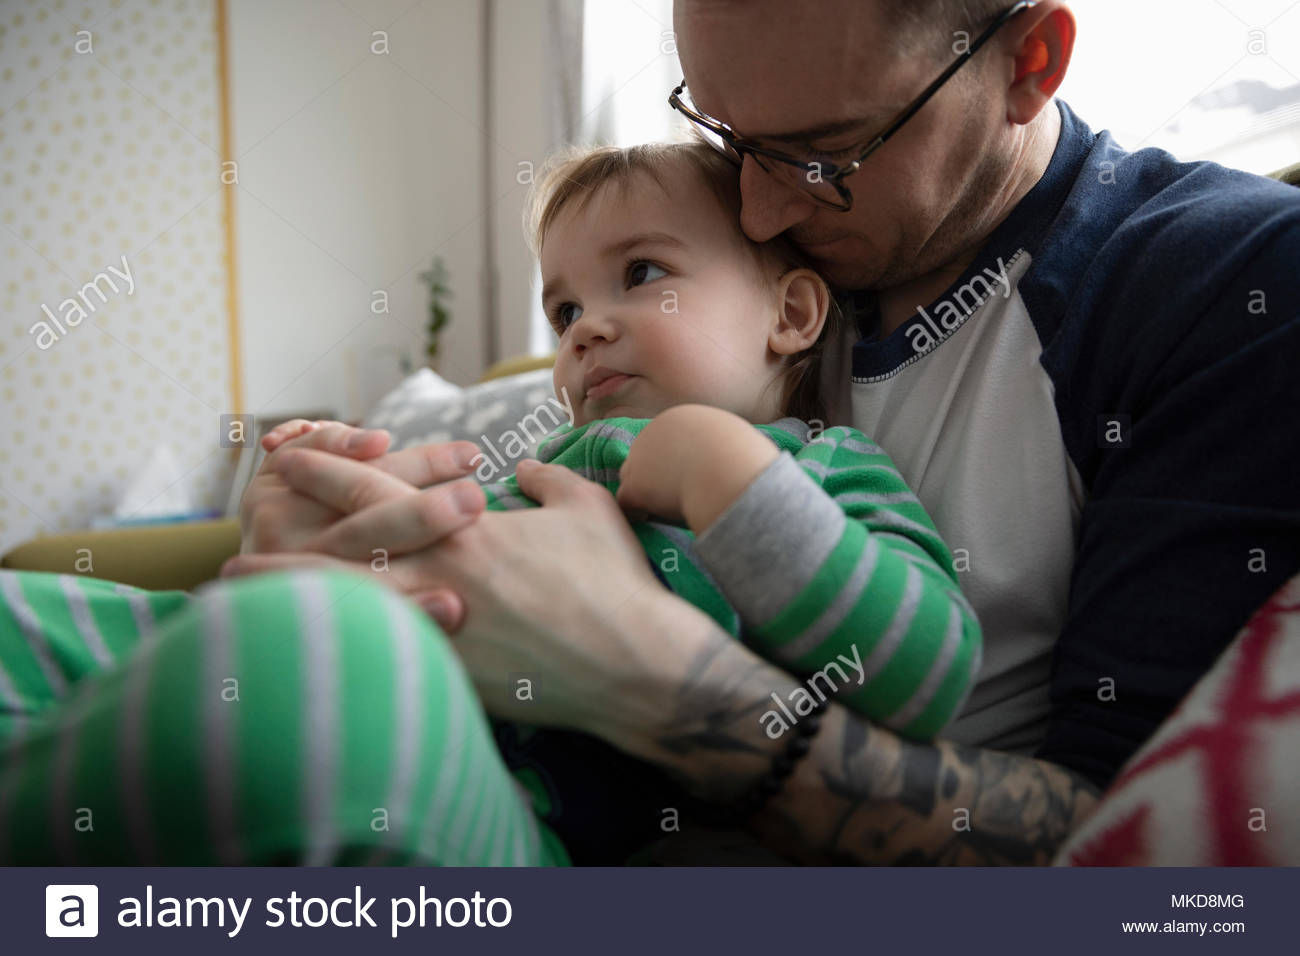 Affectionate, tender father cuddling baby son - Stock Image